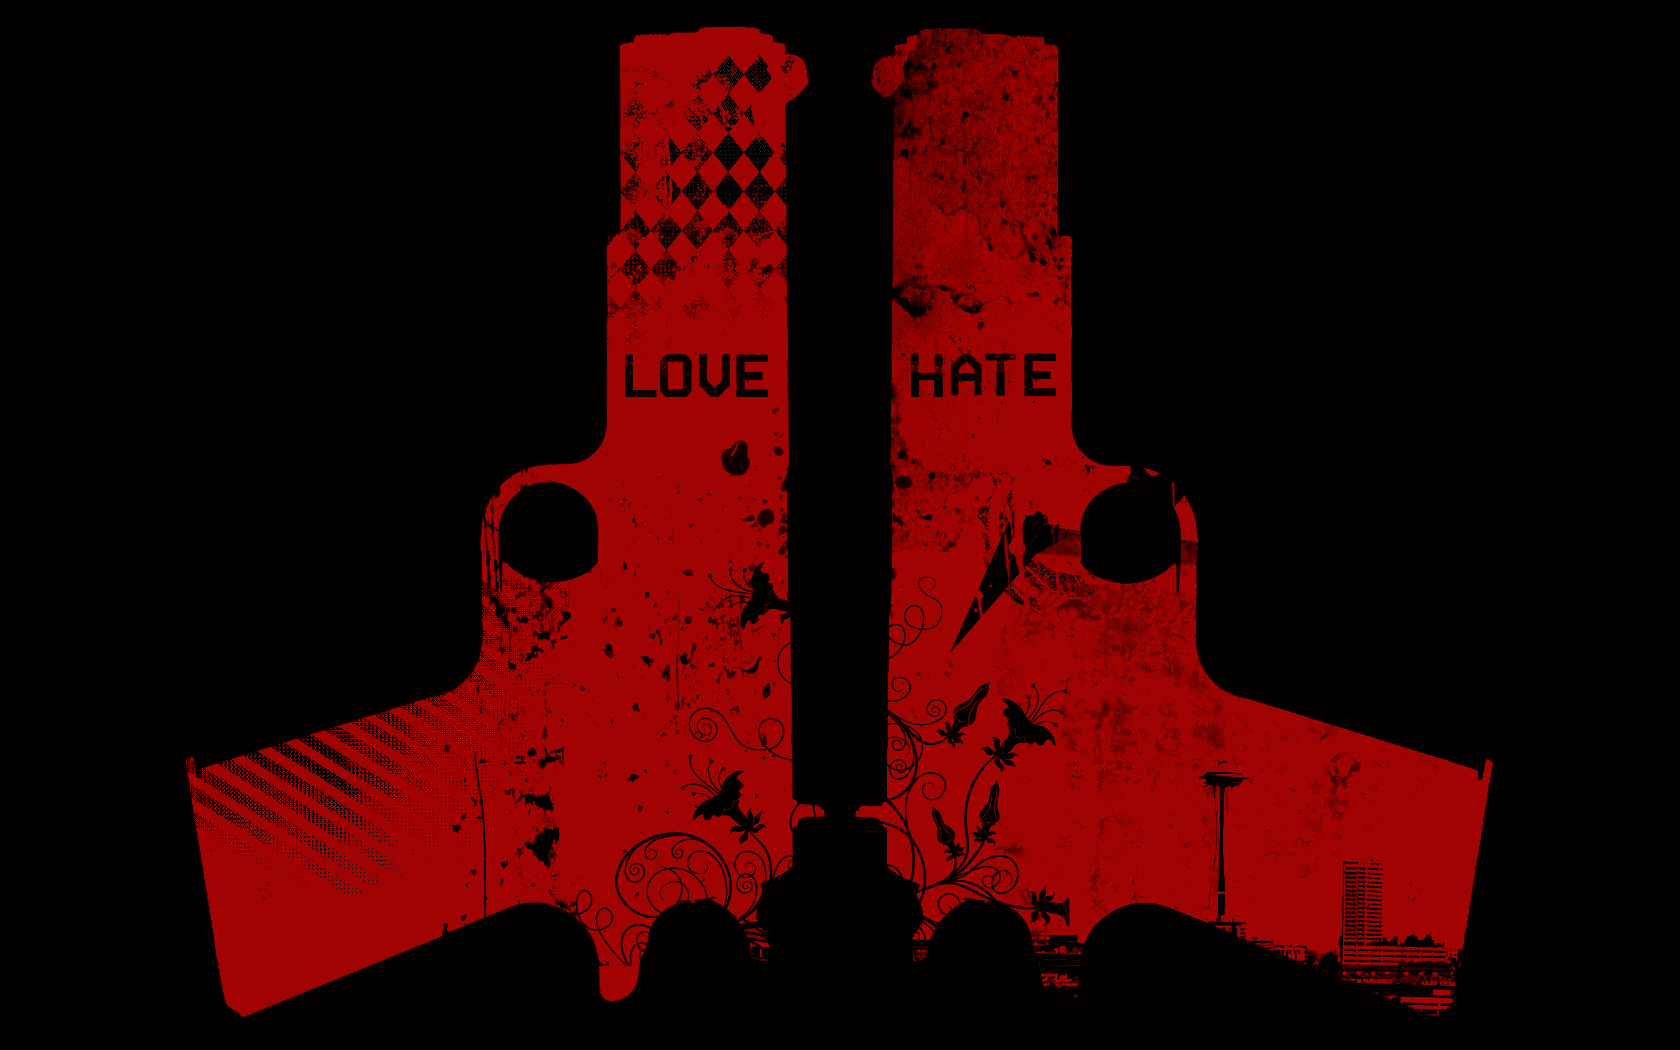 Hate Love Wallpaper In Hd : Download Hate Love HD Wallpapers Gallery